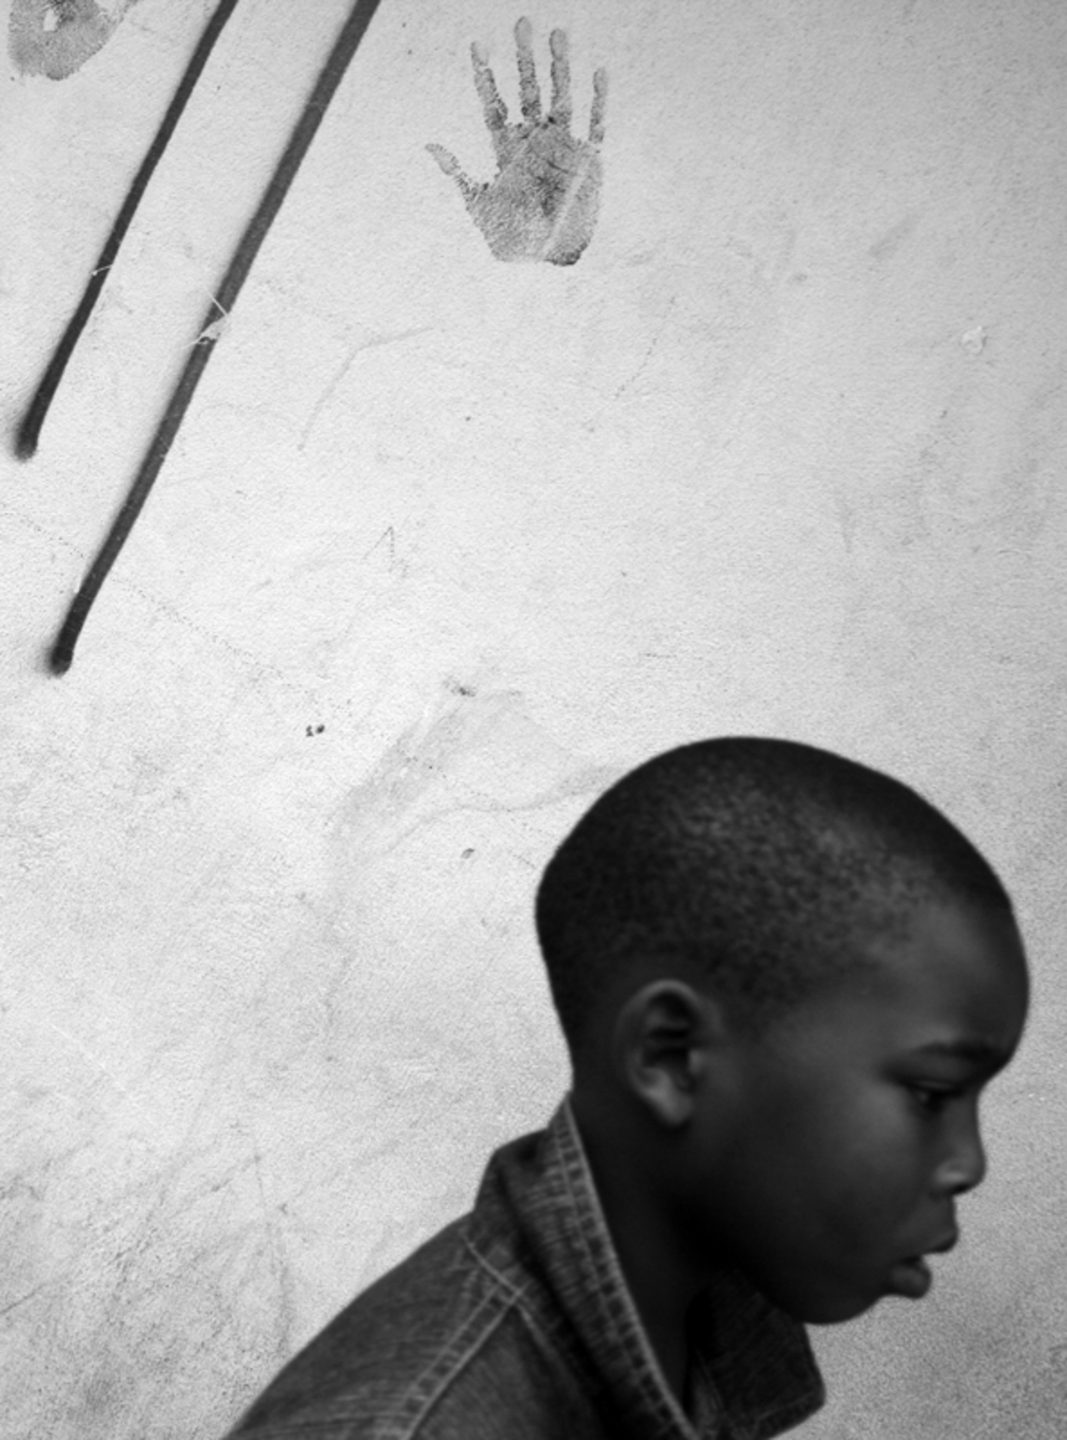 Boy walks past the mark of a hand printed on wall, 2012.